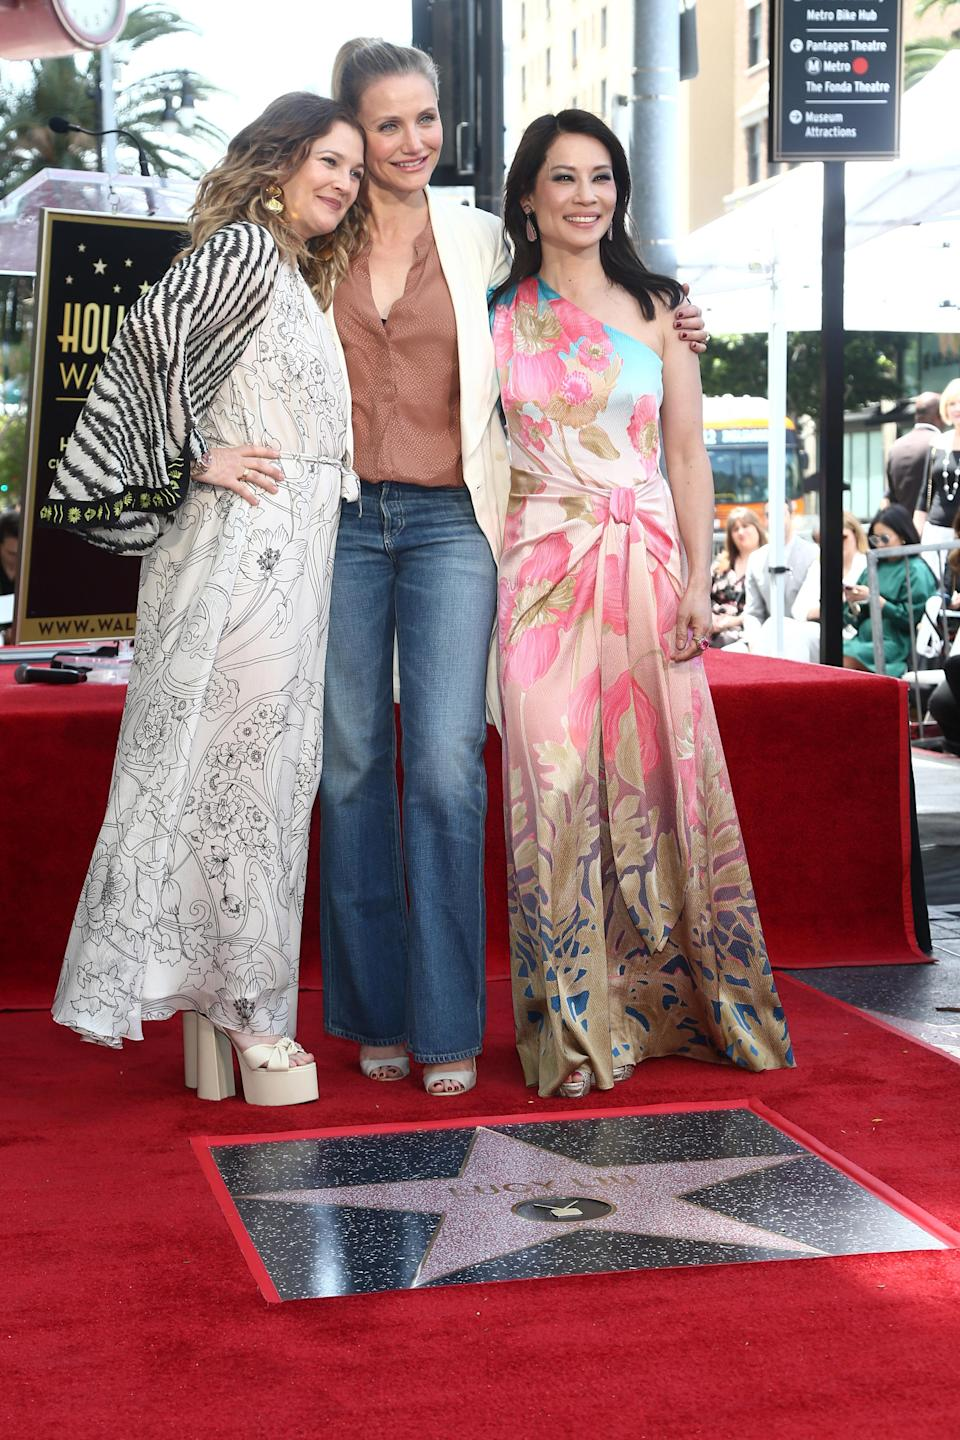 Drew Barrymore, Lucy Liu and Cameron Diaz attend a ceremony honoring Lucy Liu With Star On The Hollywood Walk Of Fame (Credit: Tommaso Boddi/WireImage)